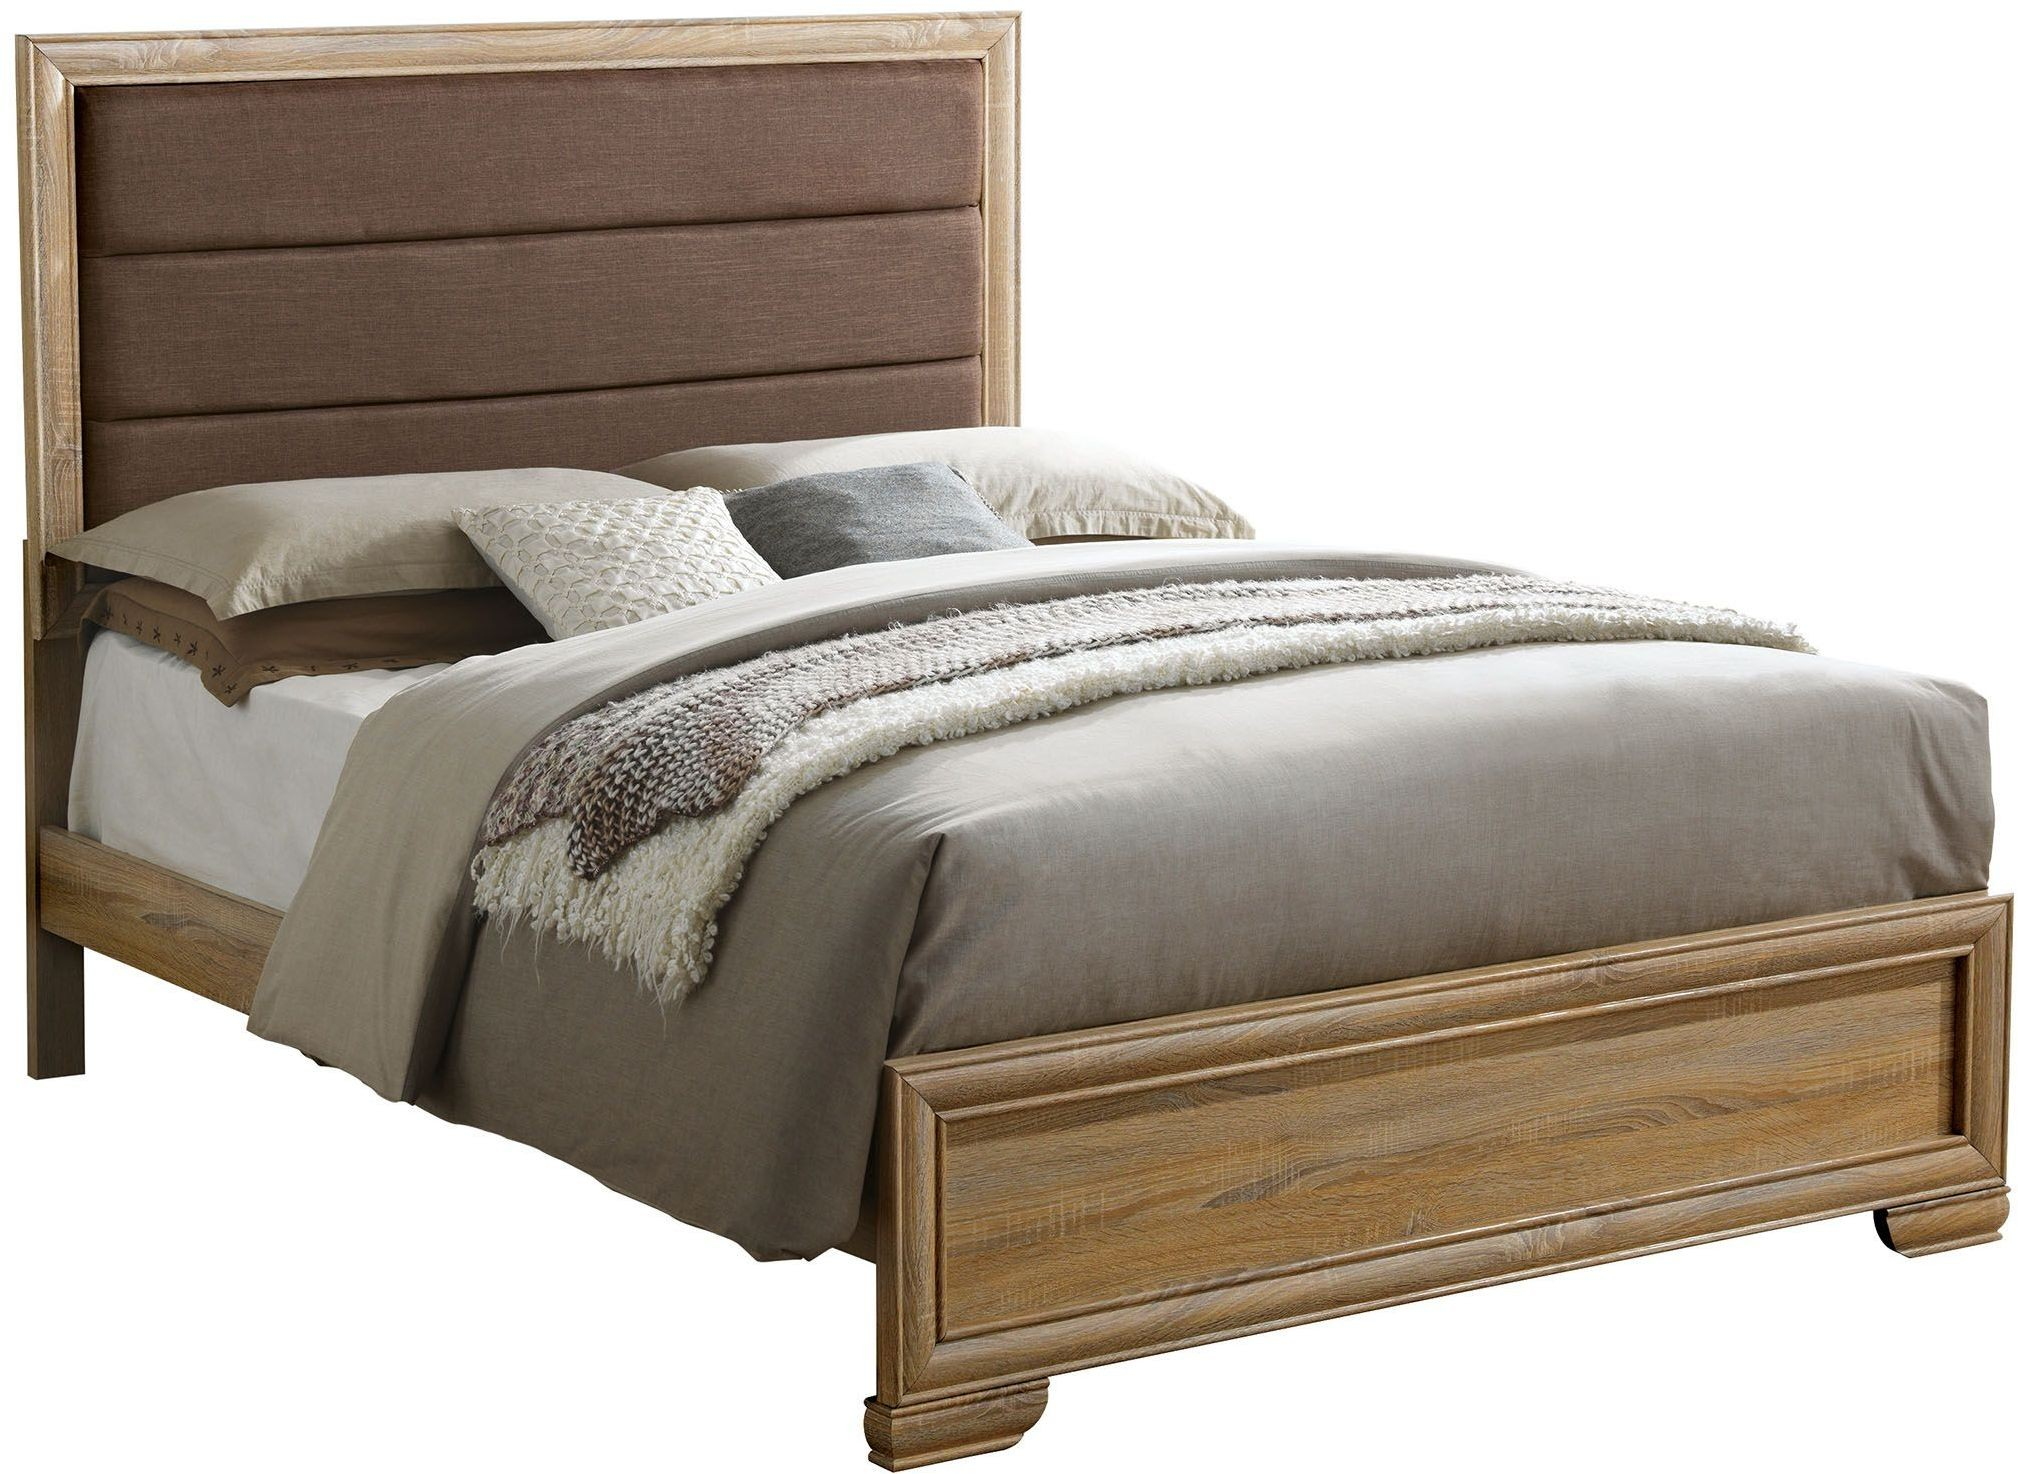 Renee Natural Cal King Upholstered Platform Bed From